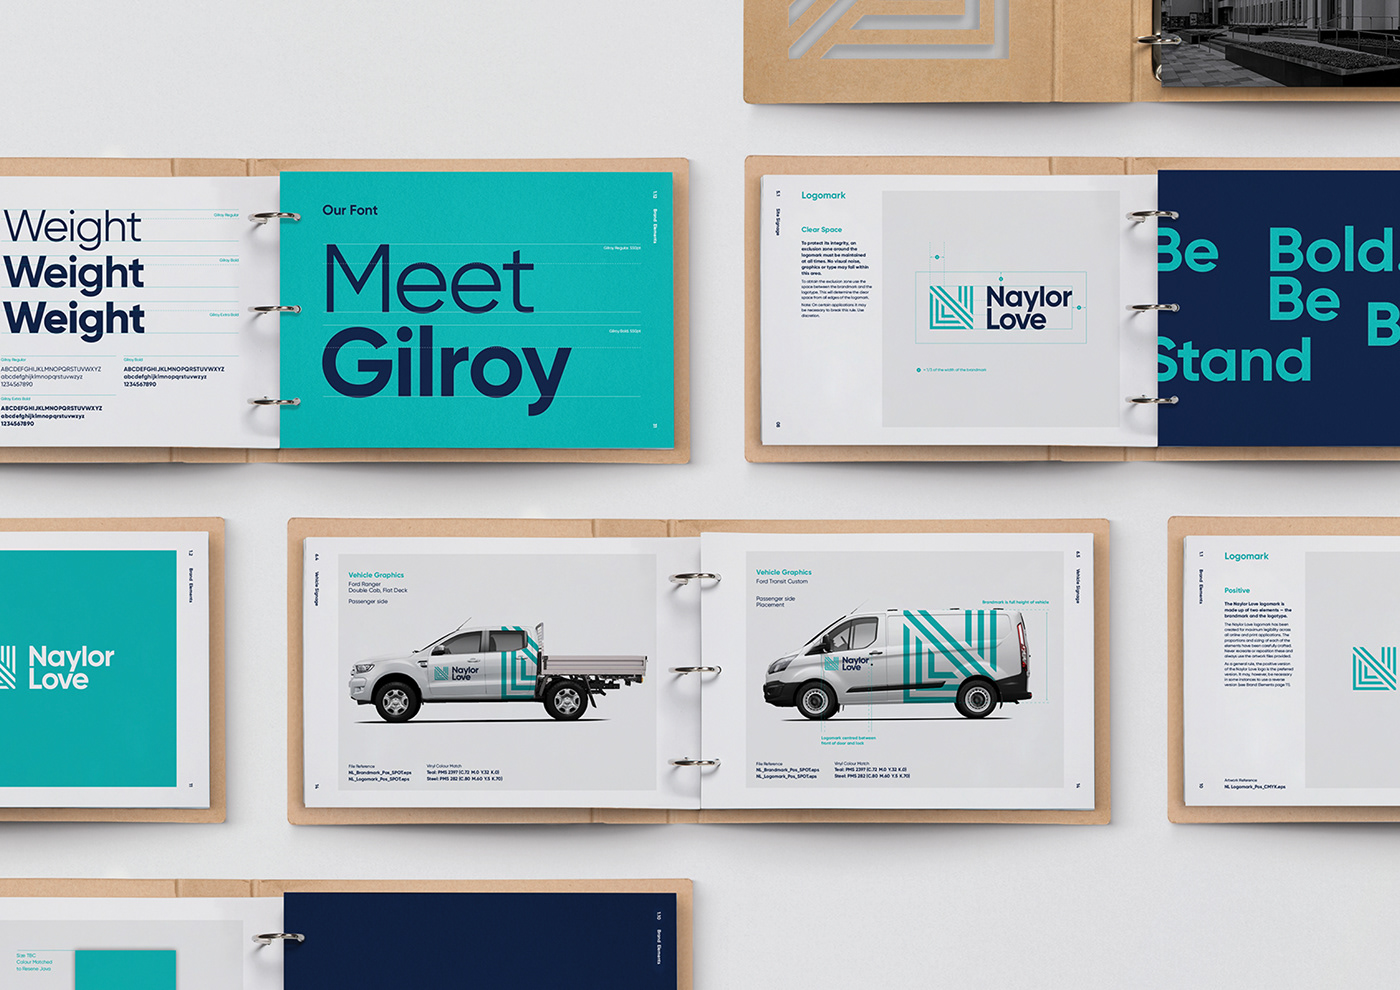 branding  construction company naylor love identity logo minimal grid Layout guidelines brand guidelines